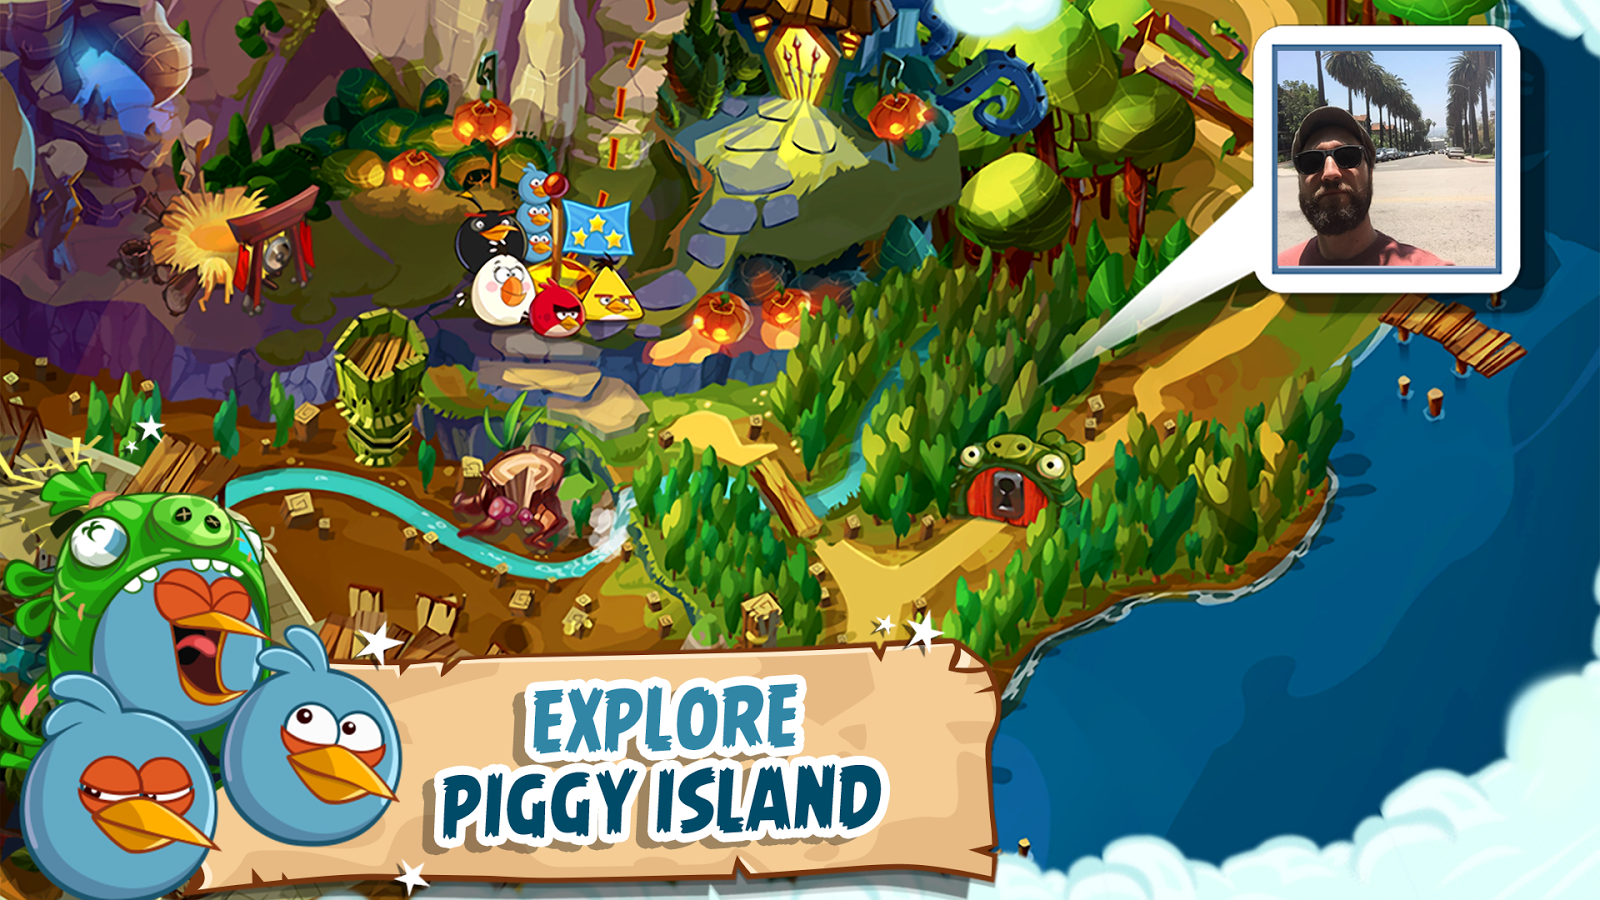 angry birds epic rpg 2 5 26974 4598 apk download android role